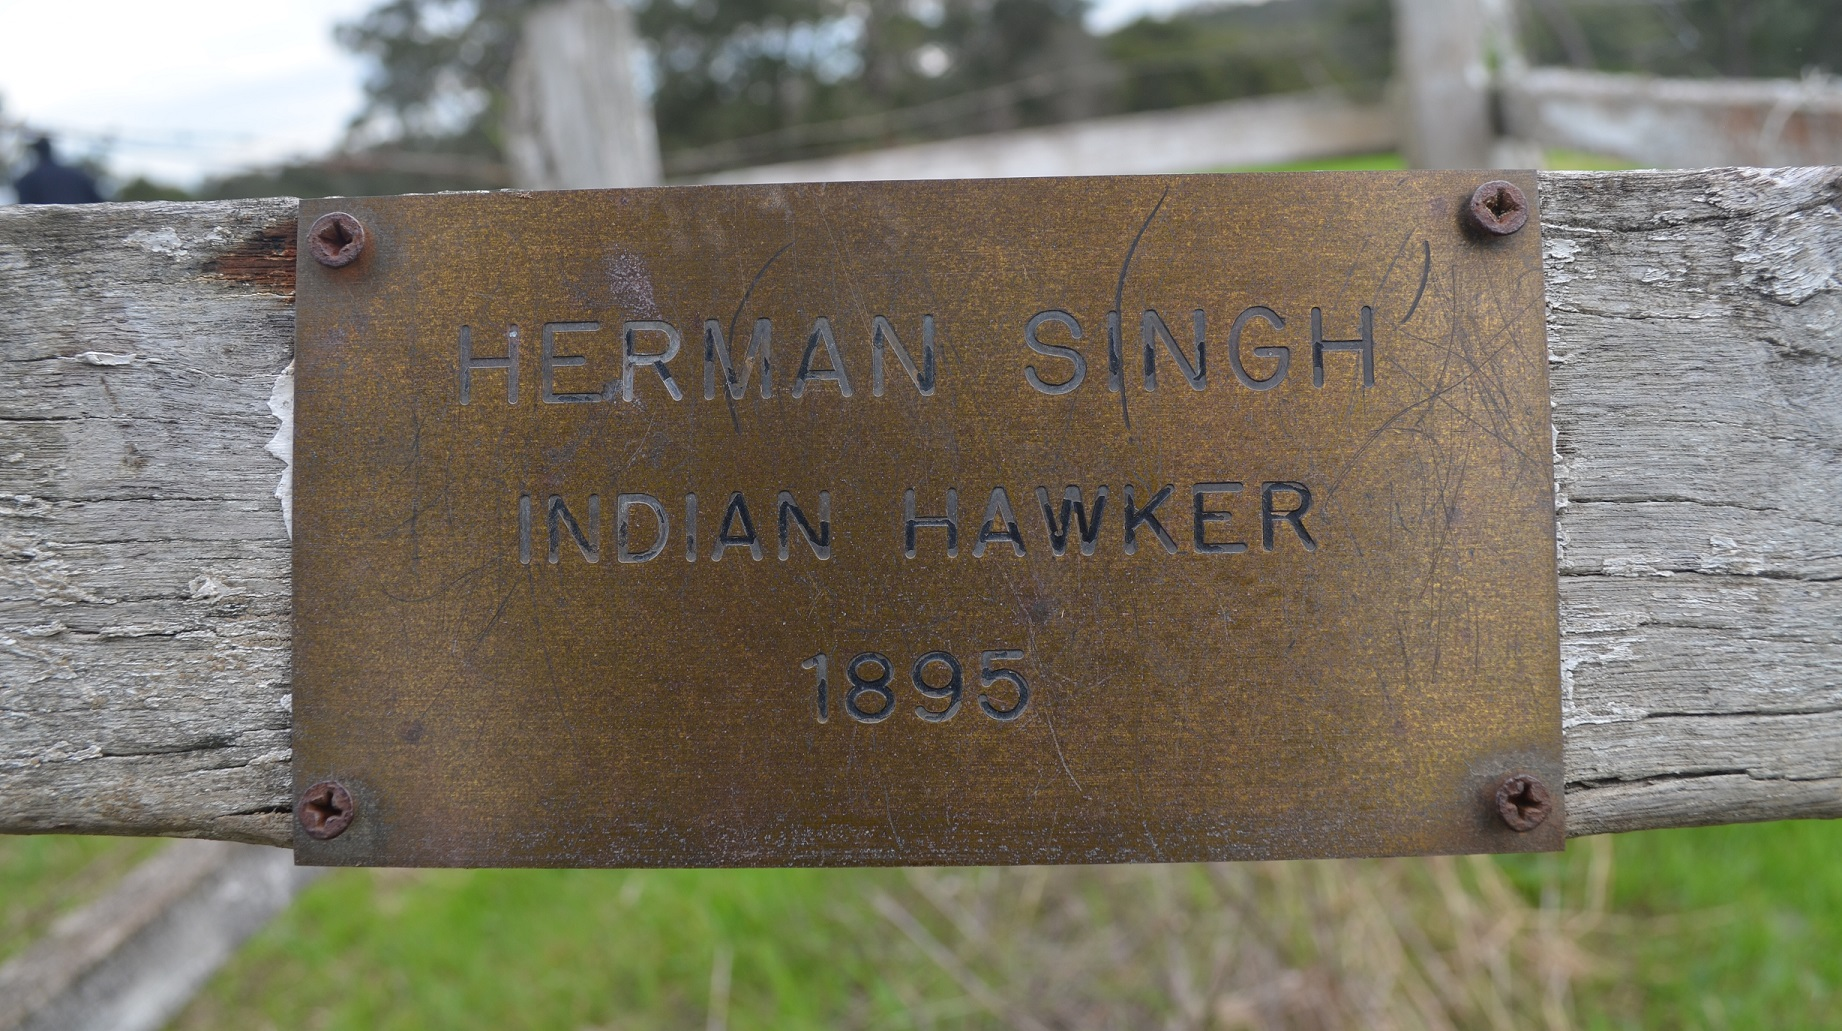 It is interesting that the date on this inscription at the cremation site states 1895 when Herman Singh died in 1901. Quite possible that this was the date Herman Singh began visiting the Muir farm.